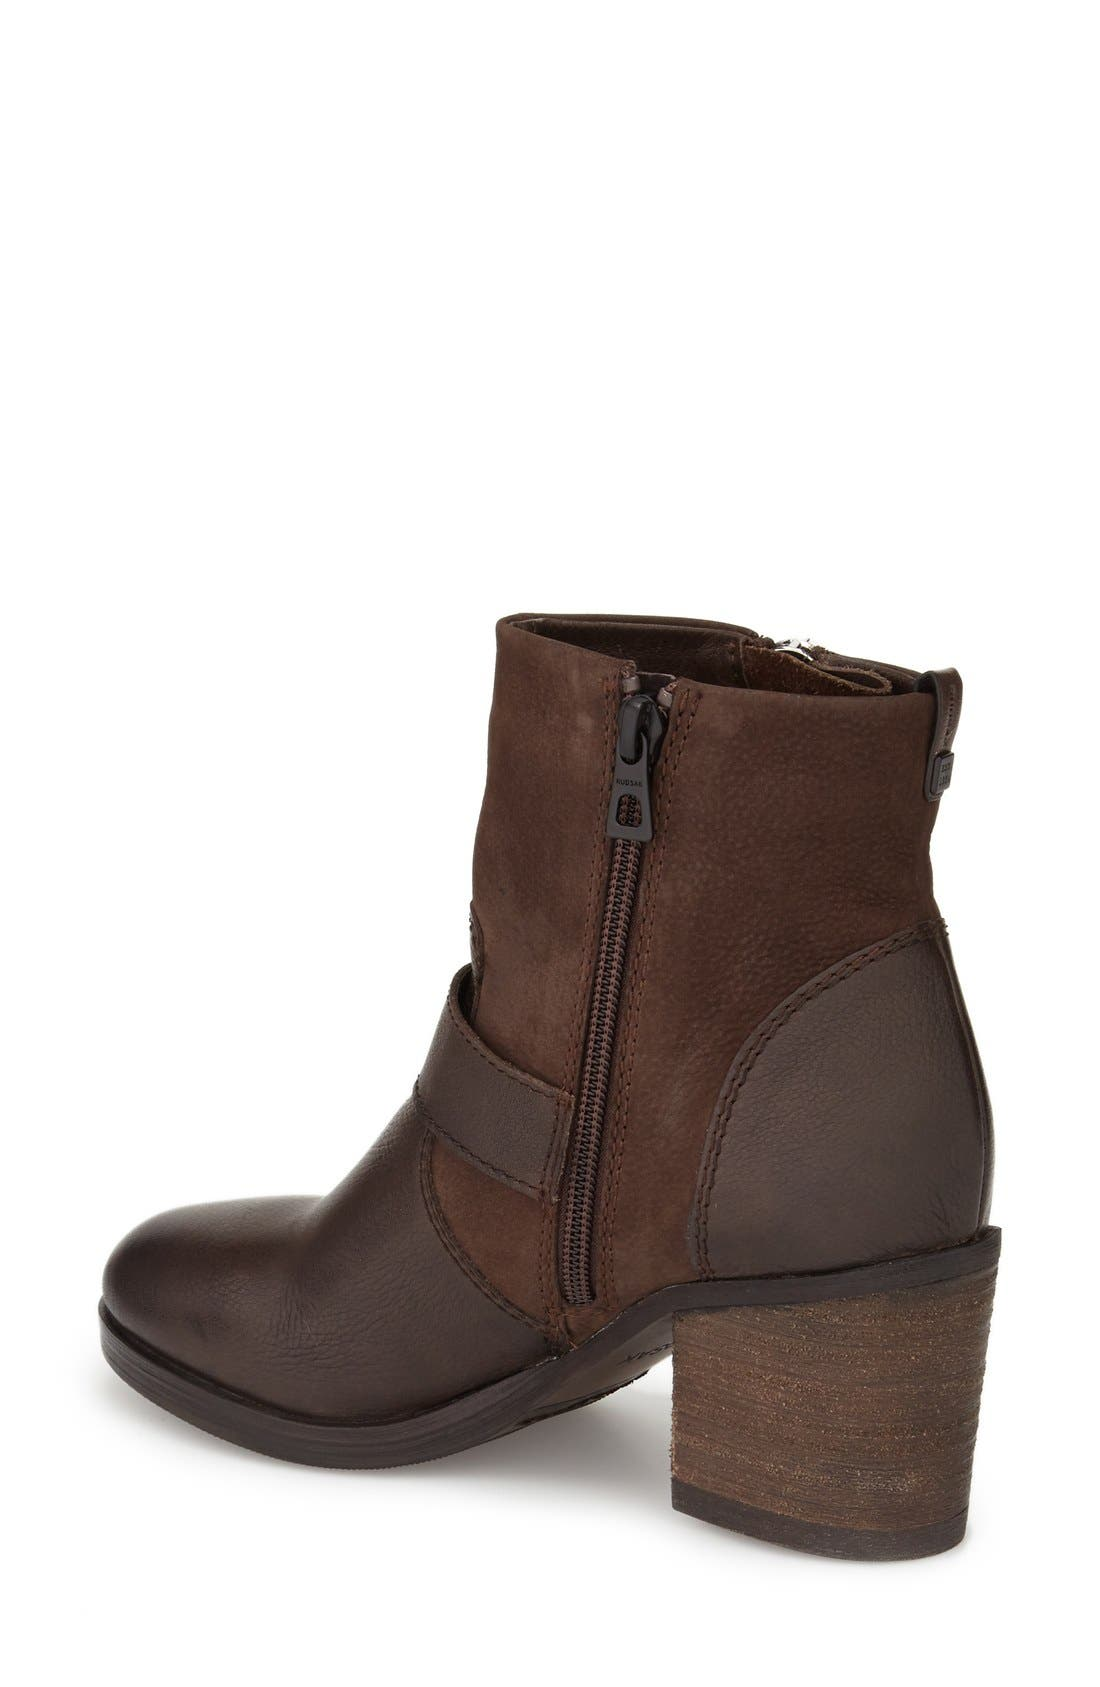 Balady Boot,                             Alternate thumbnail 2, color,                             Brown Leather